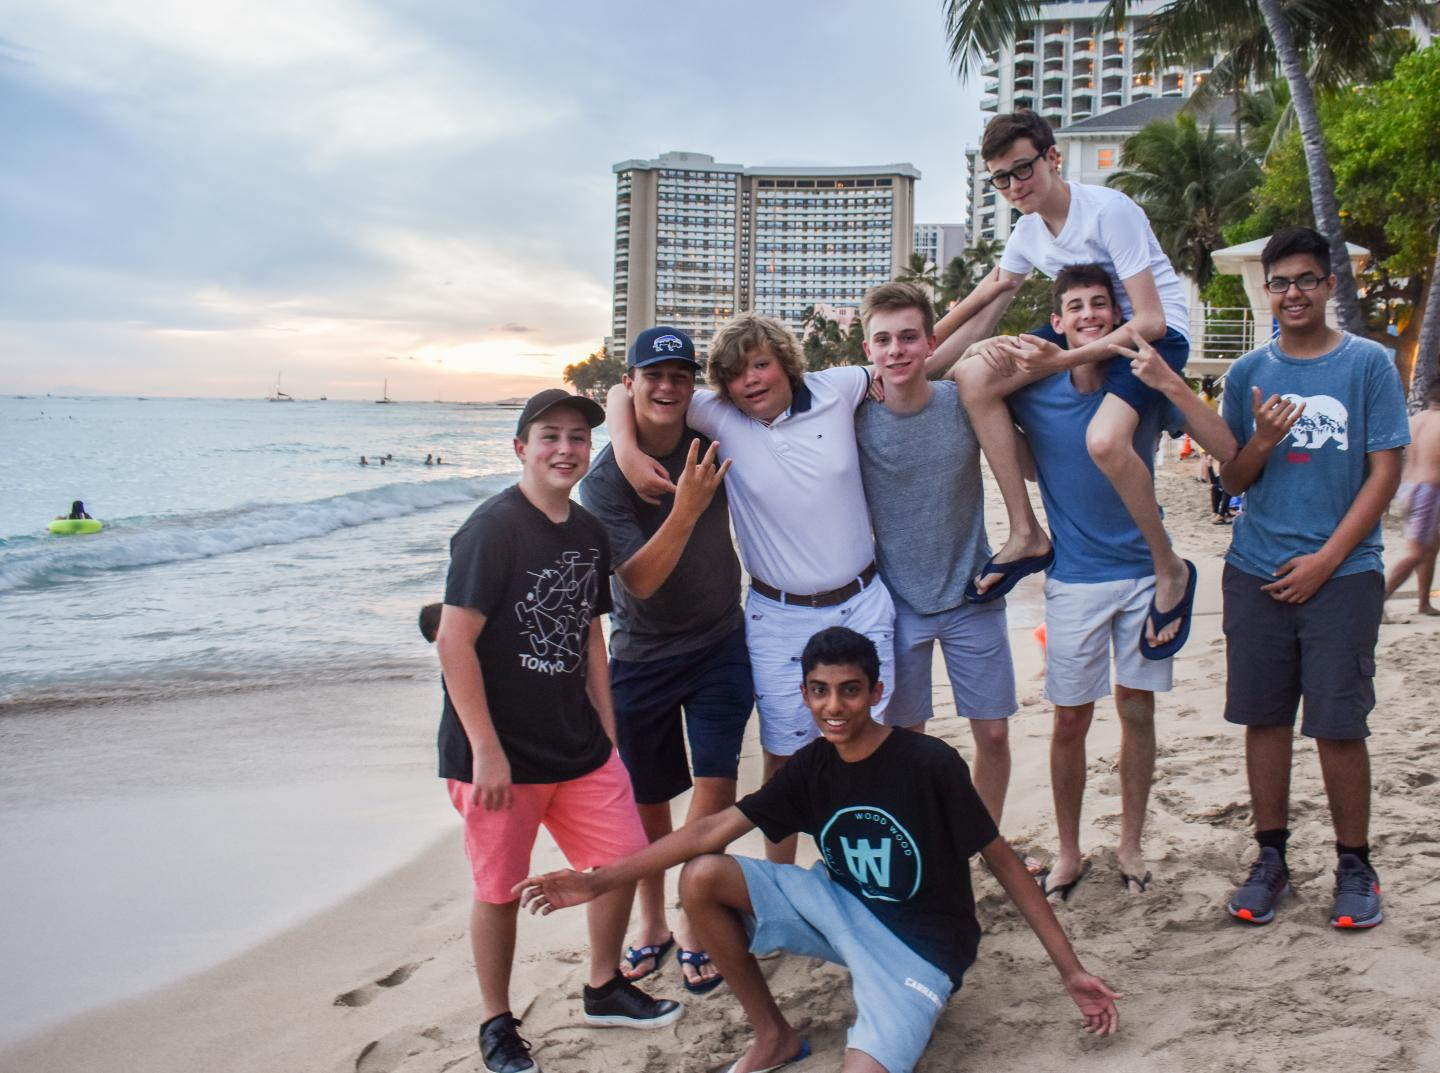 A group of friends poses for a photo on the beach during their teen tour of North America.